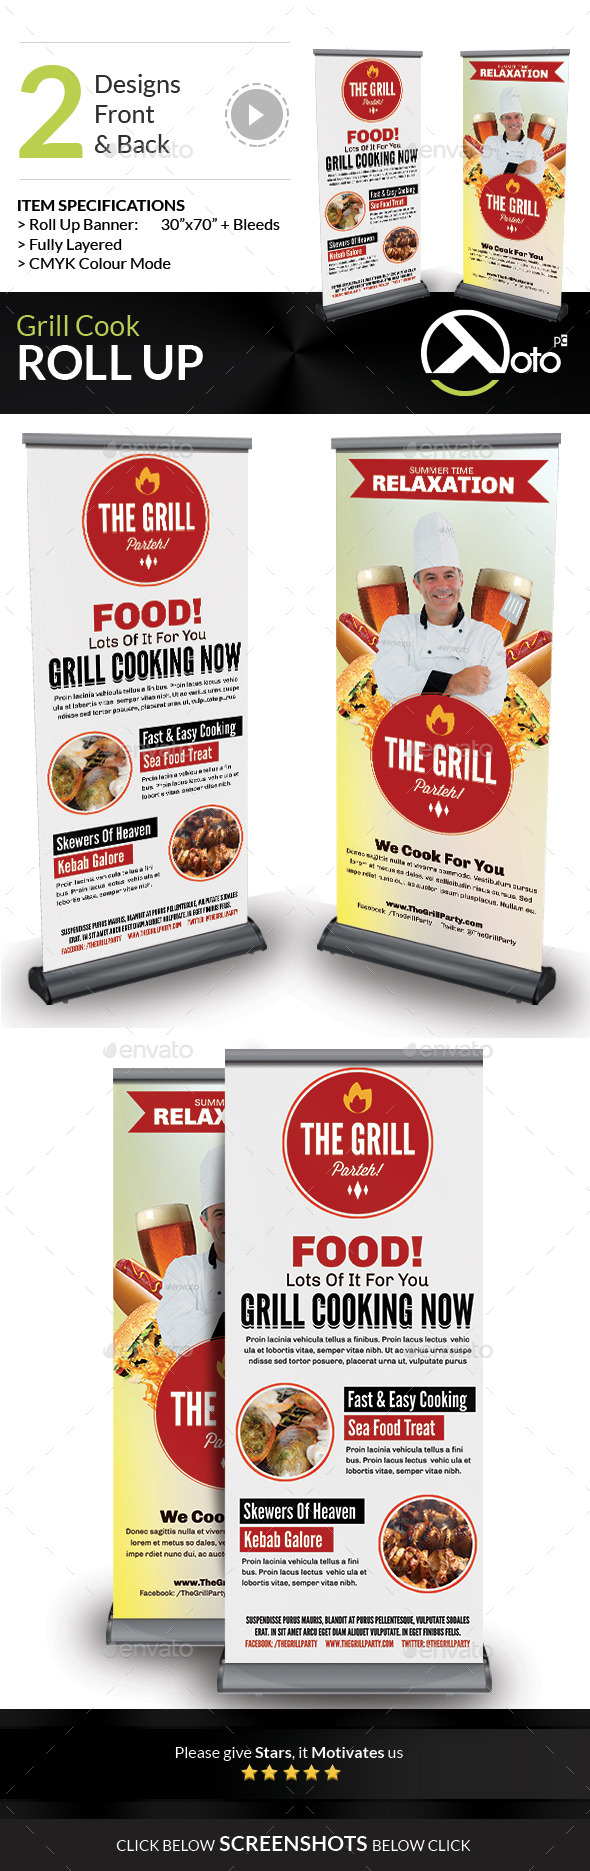 GraphicRiver Grill Cook Outdoor Kebab Party Roll Up Banners 8875432